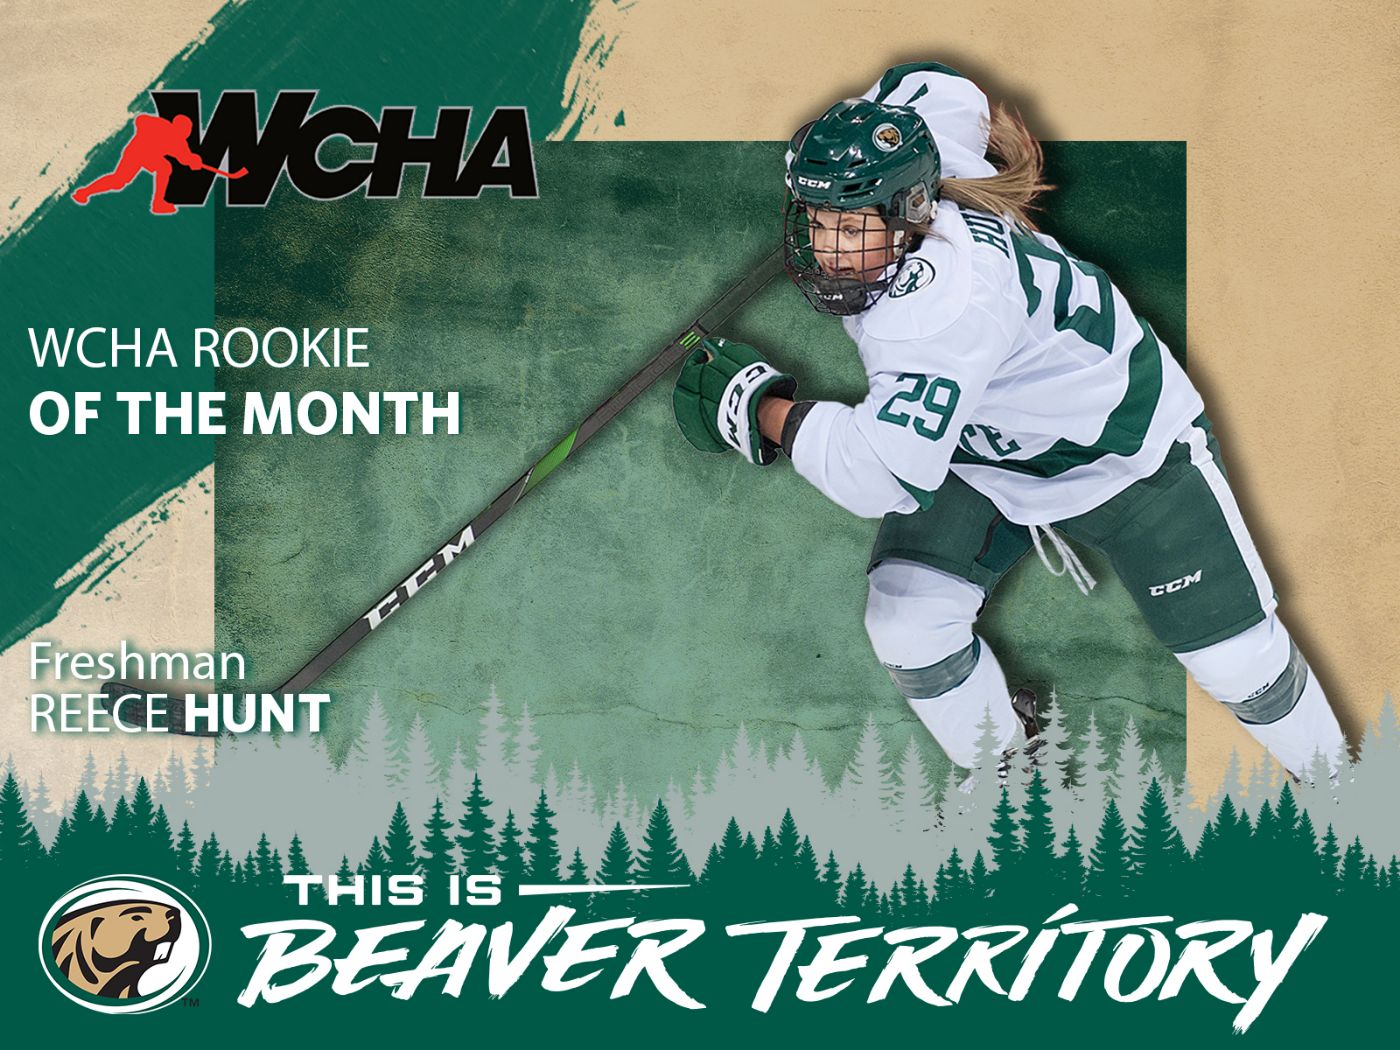 Hunt earns WCHA Rookie of the Month for February